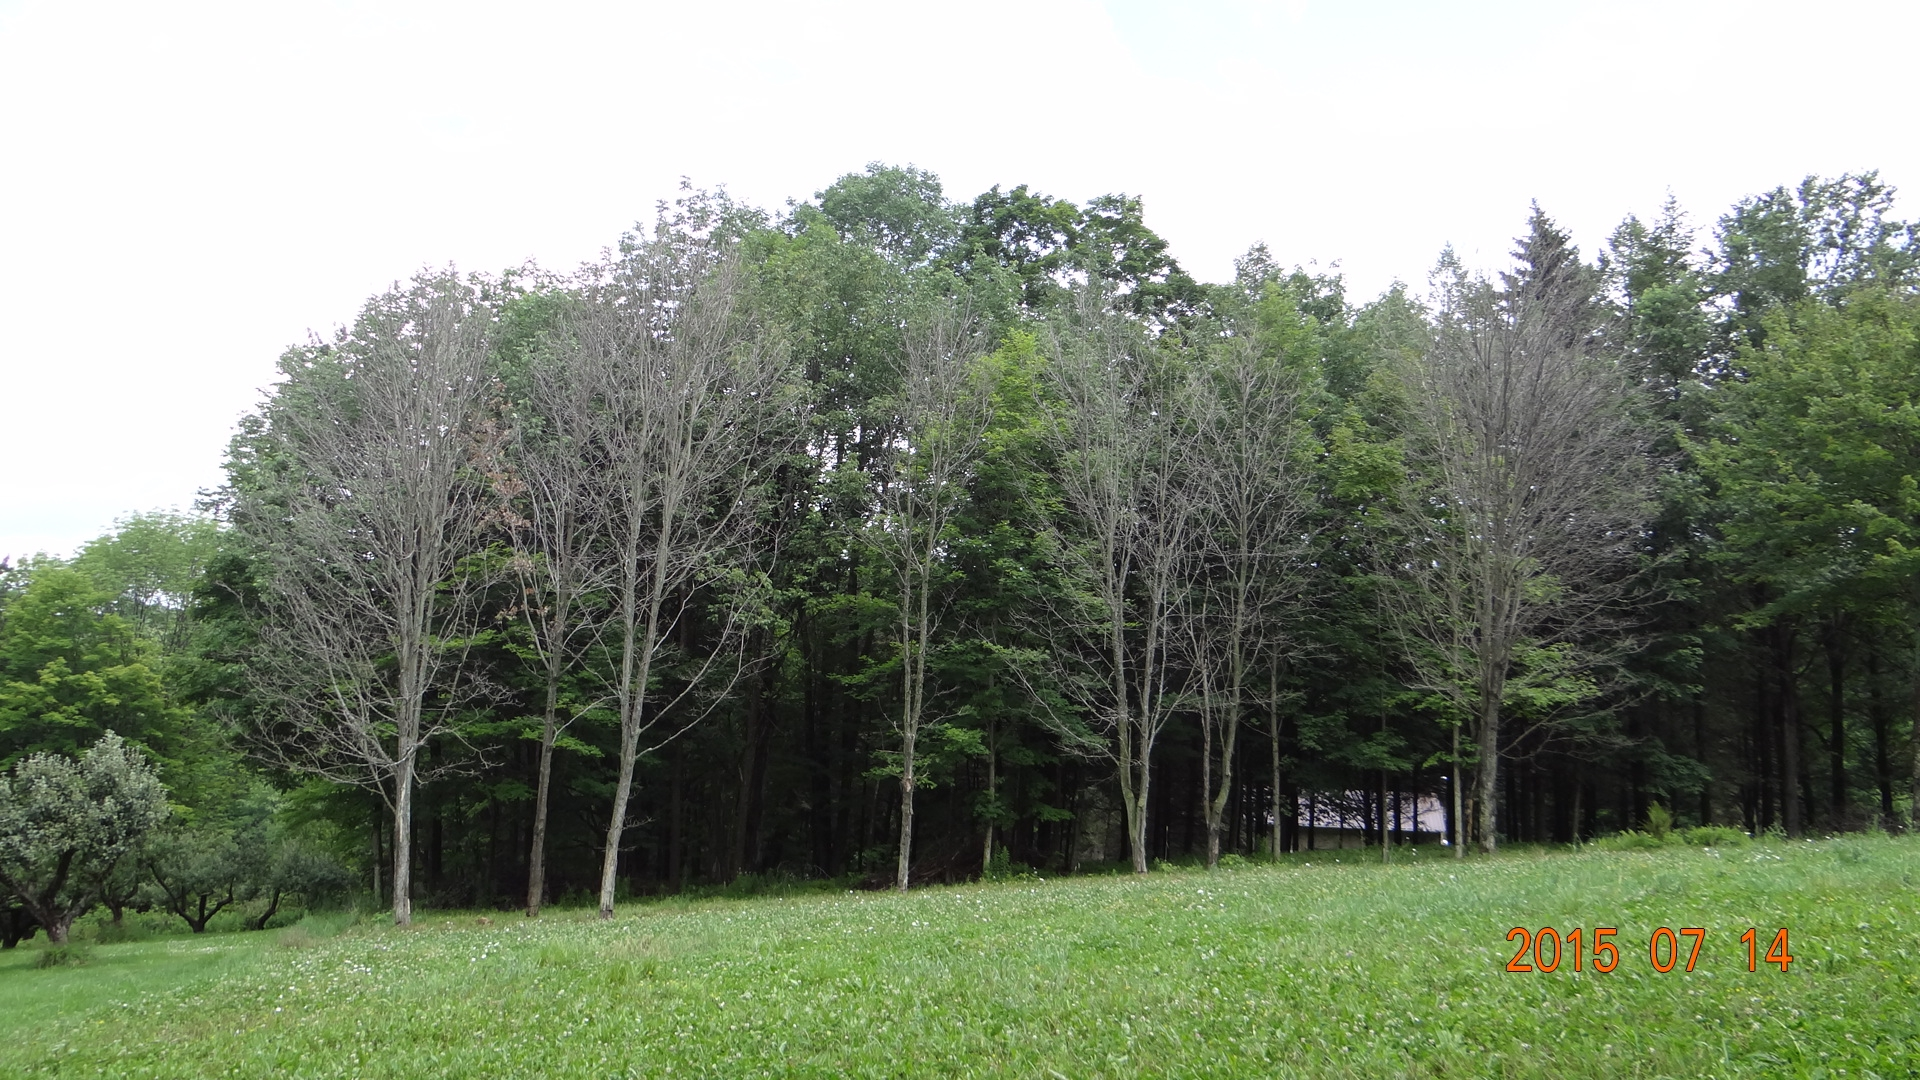 Girdling Trees to Expand Food Plots